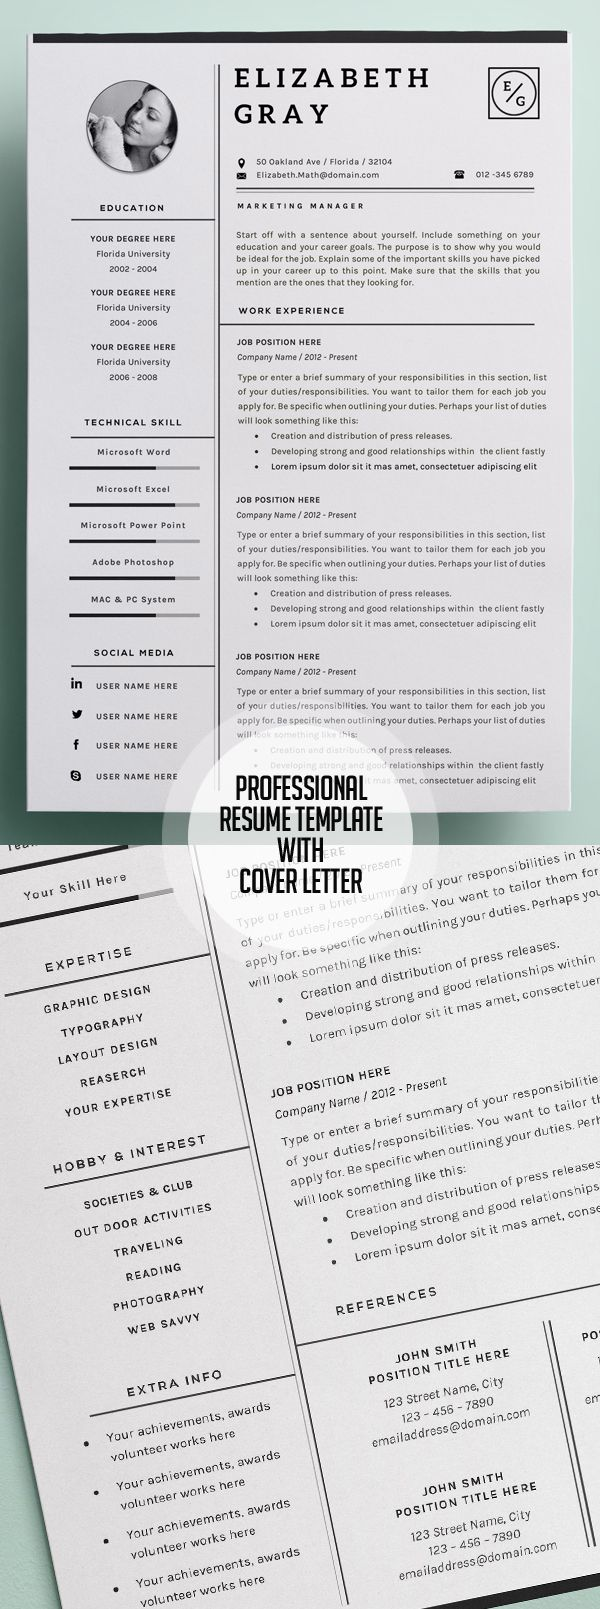 Picnictoimpeachus  Pretty  Resume Ideas On Pinterest  Resume Resume Templates And  With Great Professional And Modern Resume Template With Page Cover Cvtemplate With Agreeable Pay For Resume Also The Best Resumes In Addition Best Administrative Assistant Resume And Resume Content As Well As Example Of Teacher Resume Additionally Best Way To Make A Resume From Pinterestcom With Picnictoimpeachus  Great  Resume Ideas On Pinterest  Resume Resume Templates And  With Agreeable Professional And Modern Resume Template With Page Cover Cvtemplate And Pretty Pay For Resume Also The Best Resumes In Addition Best Administrative Assistant Resume From Pinterestcom